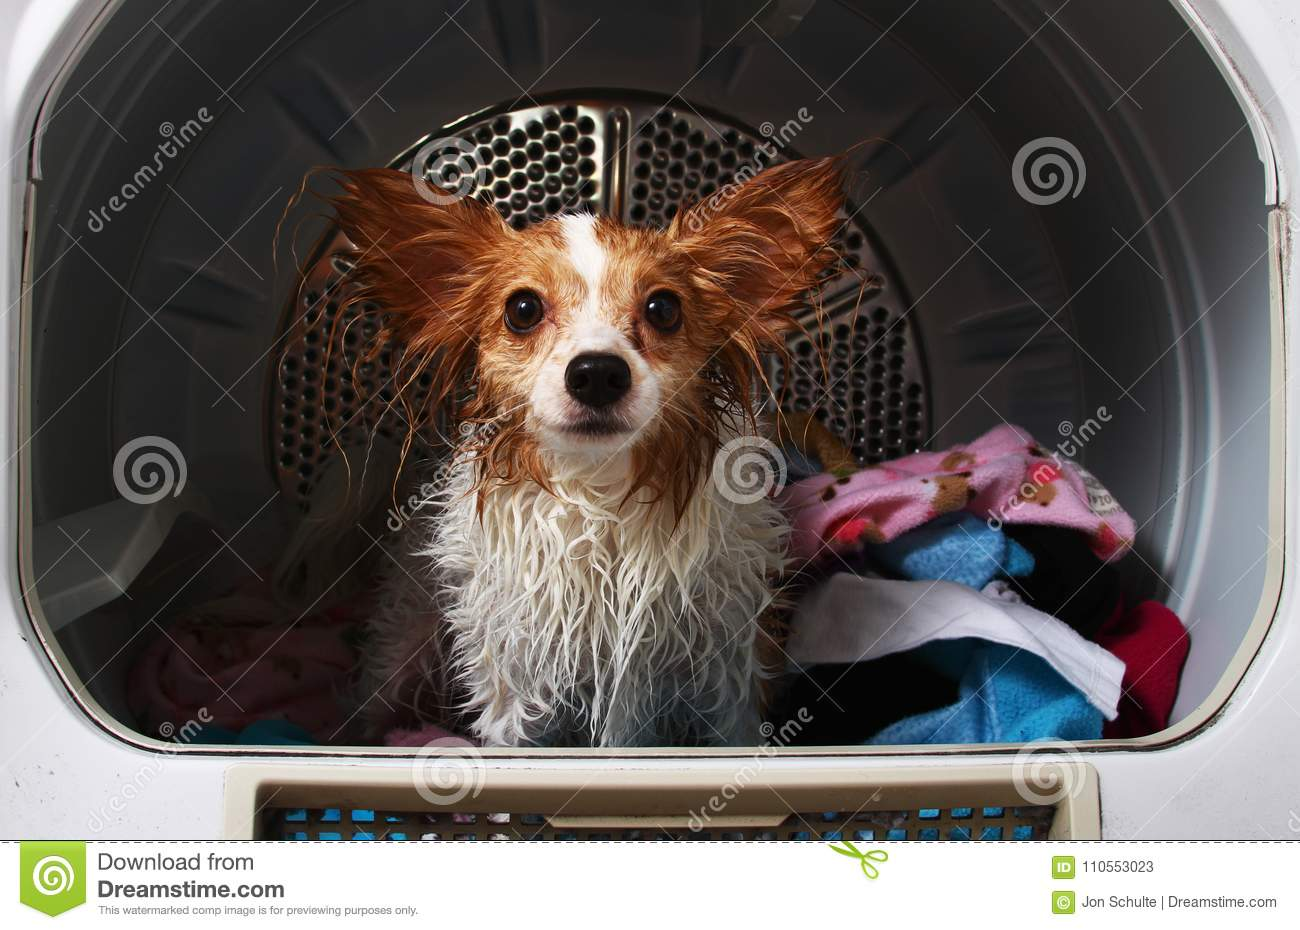 A pet dog in a dryer machine